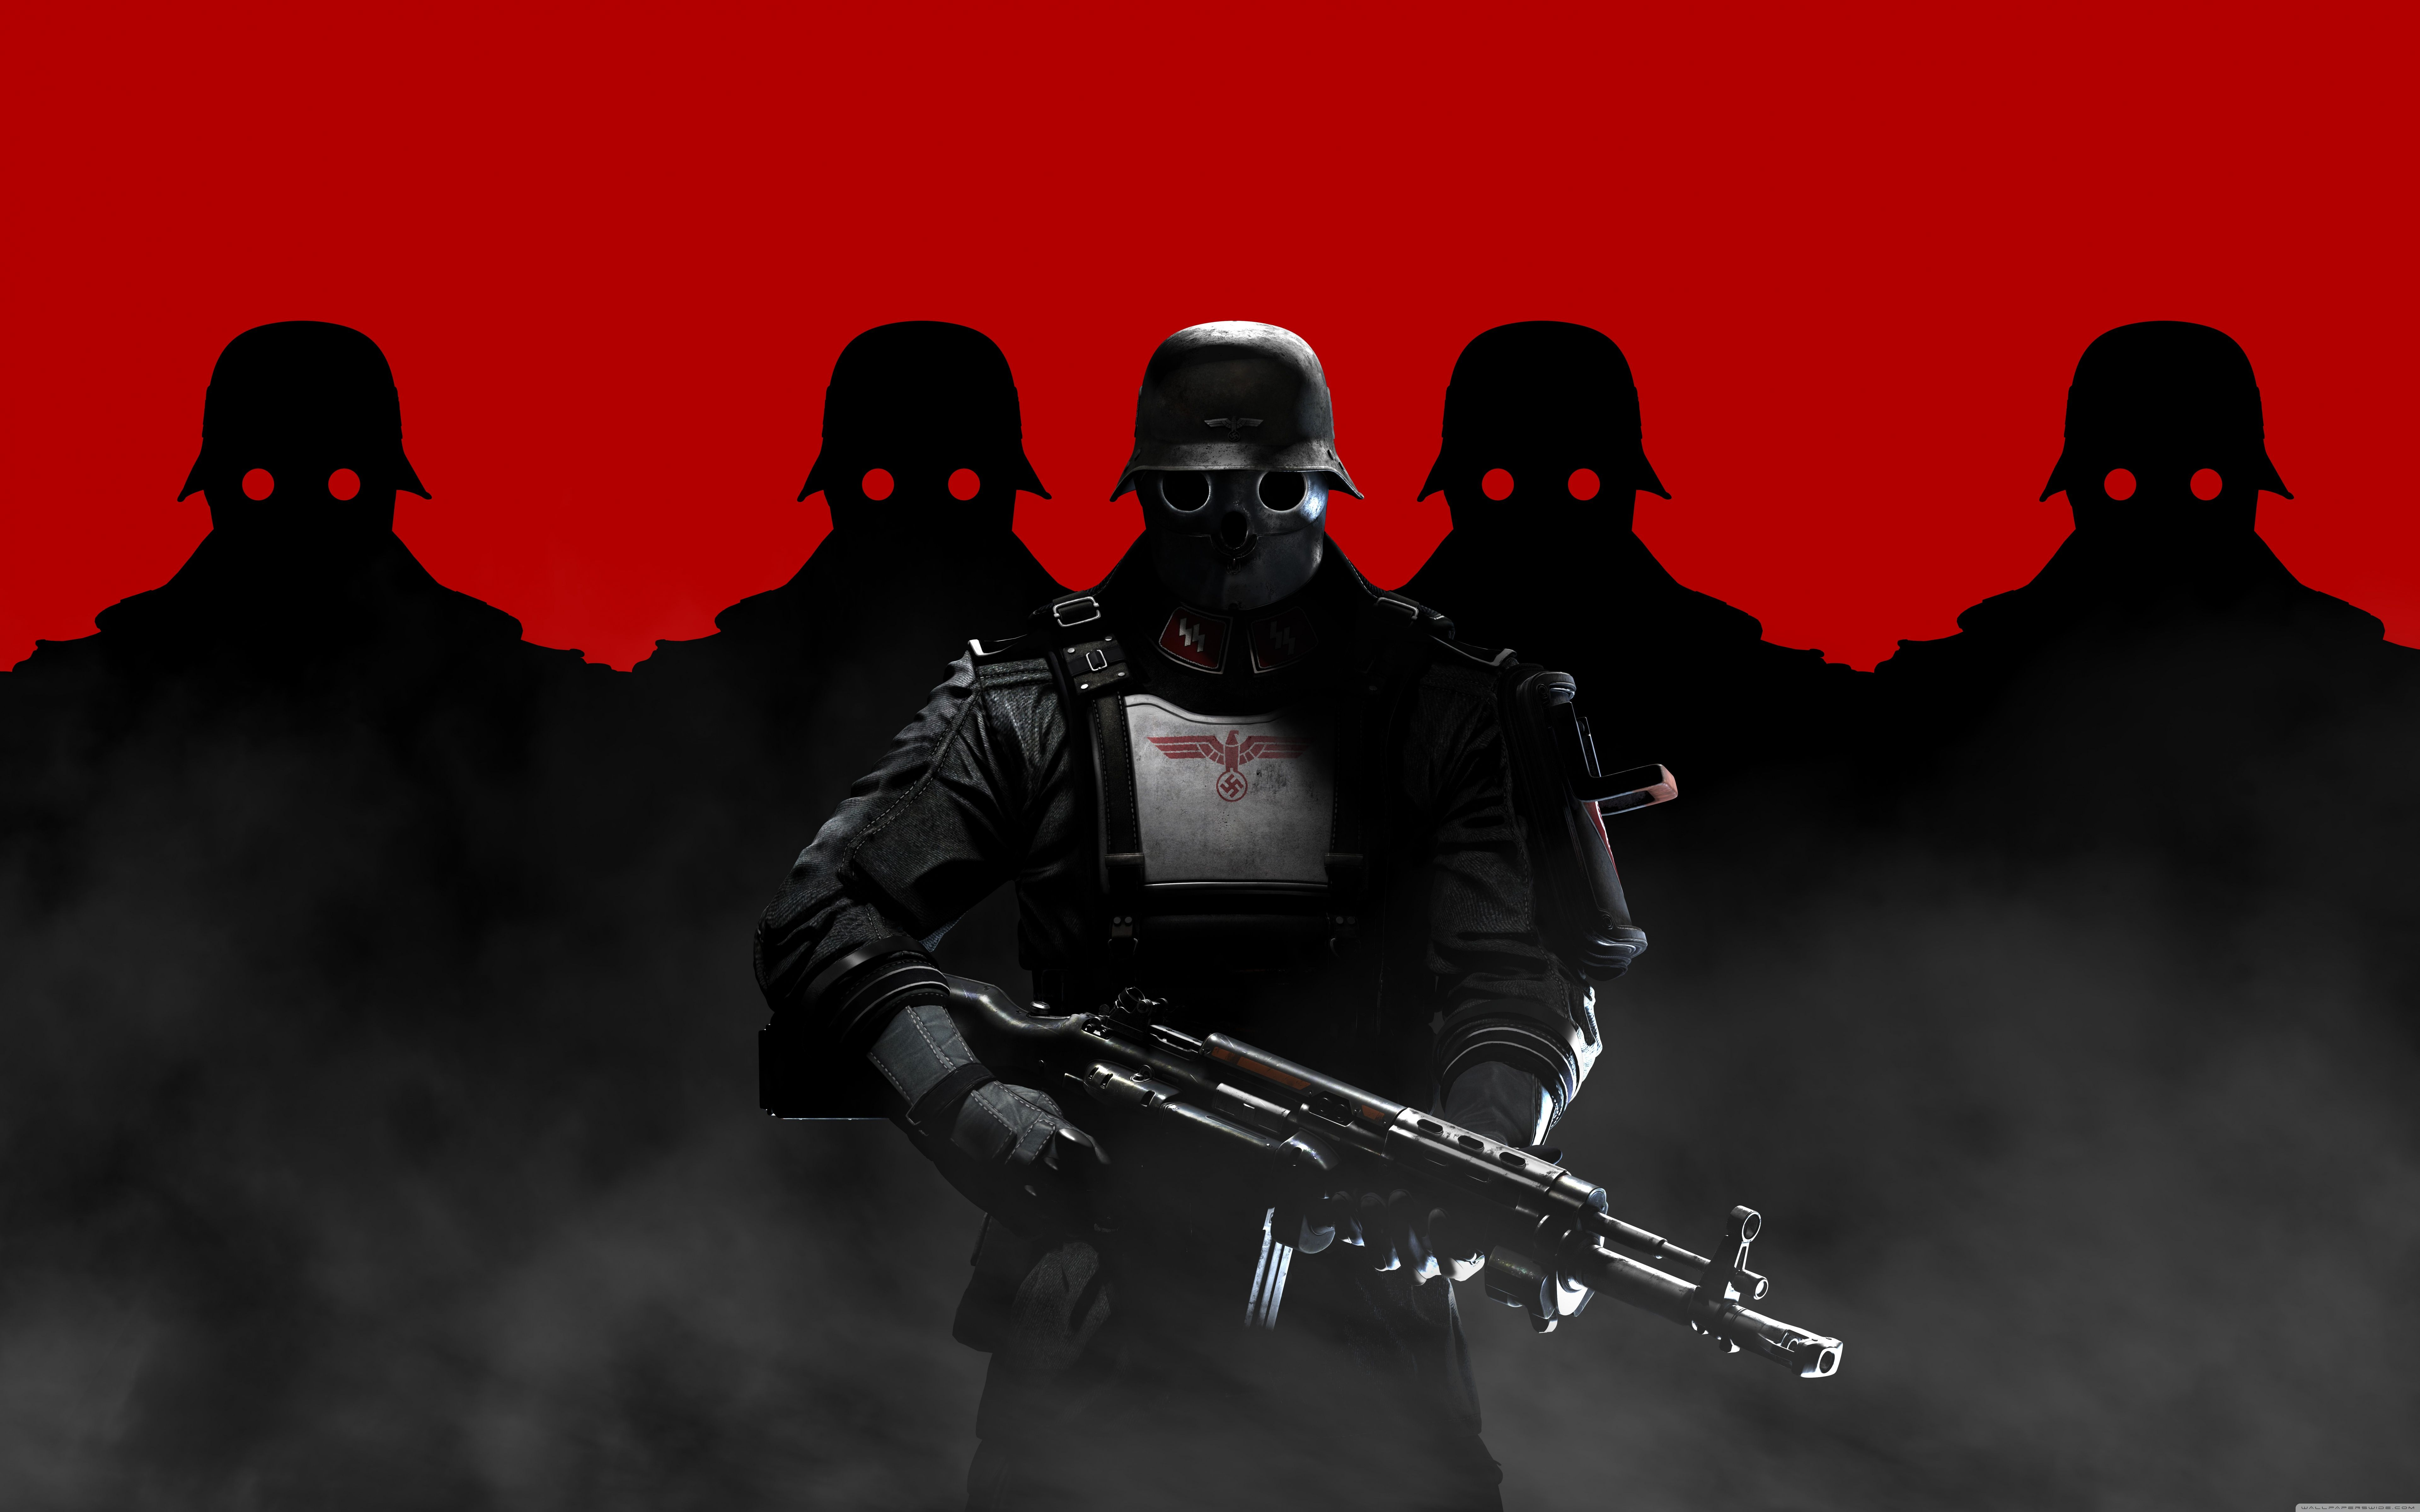 Soldiers Wallpaper Hd Resolution The New Colossus Wolfenstein Soldier Images